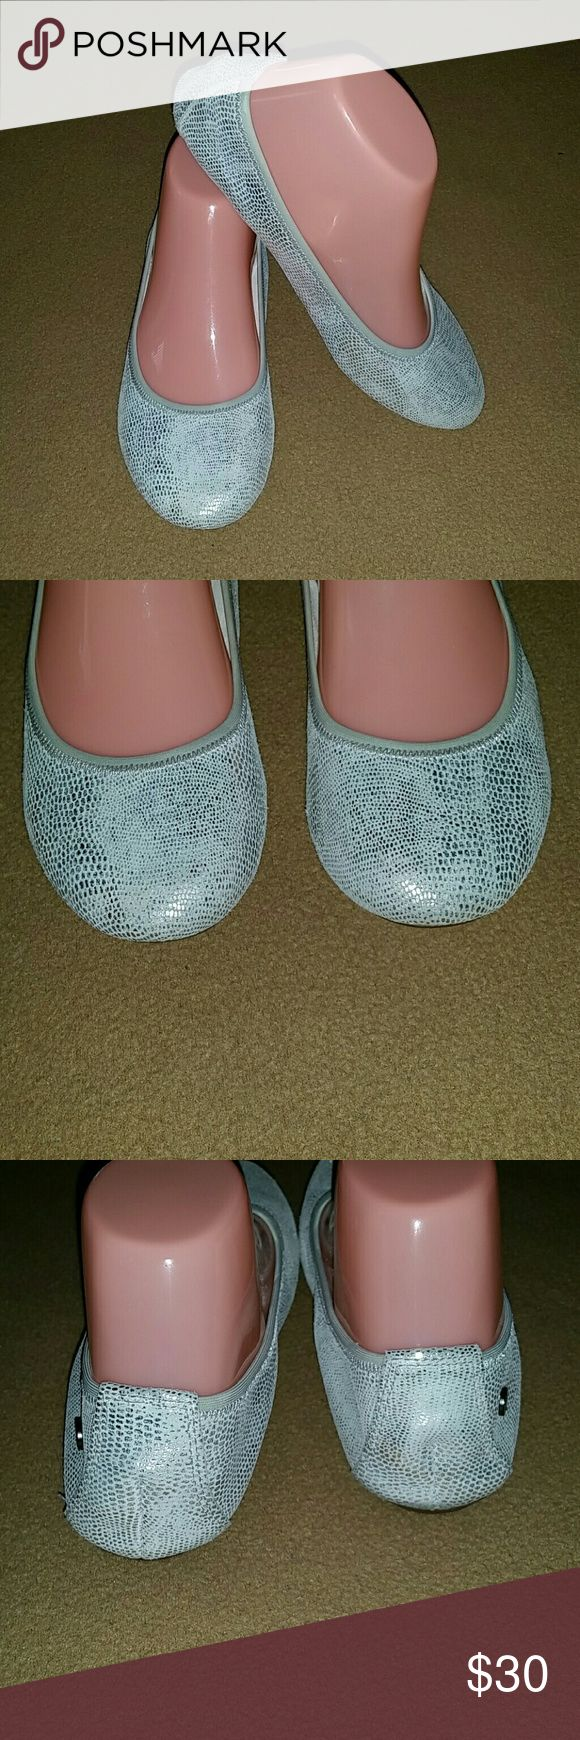 Hush Puppies Flats Size 6M Hush Puppies Flats Size 6M silver color In good preowned condition. Hush Puppies Shoes Flats & Loafers